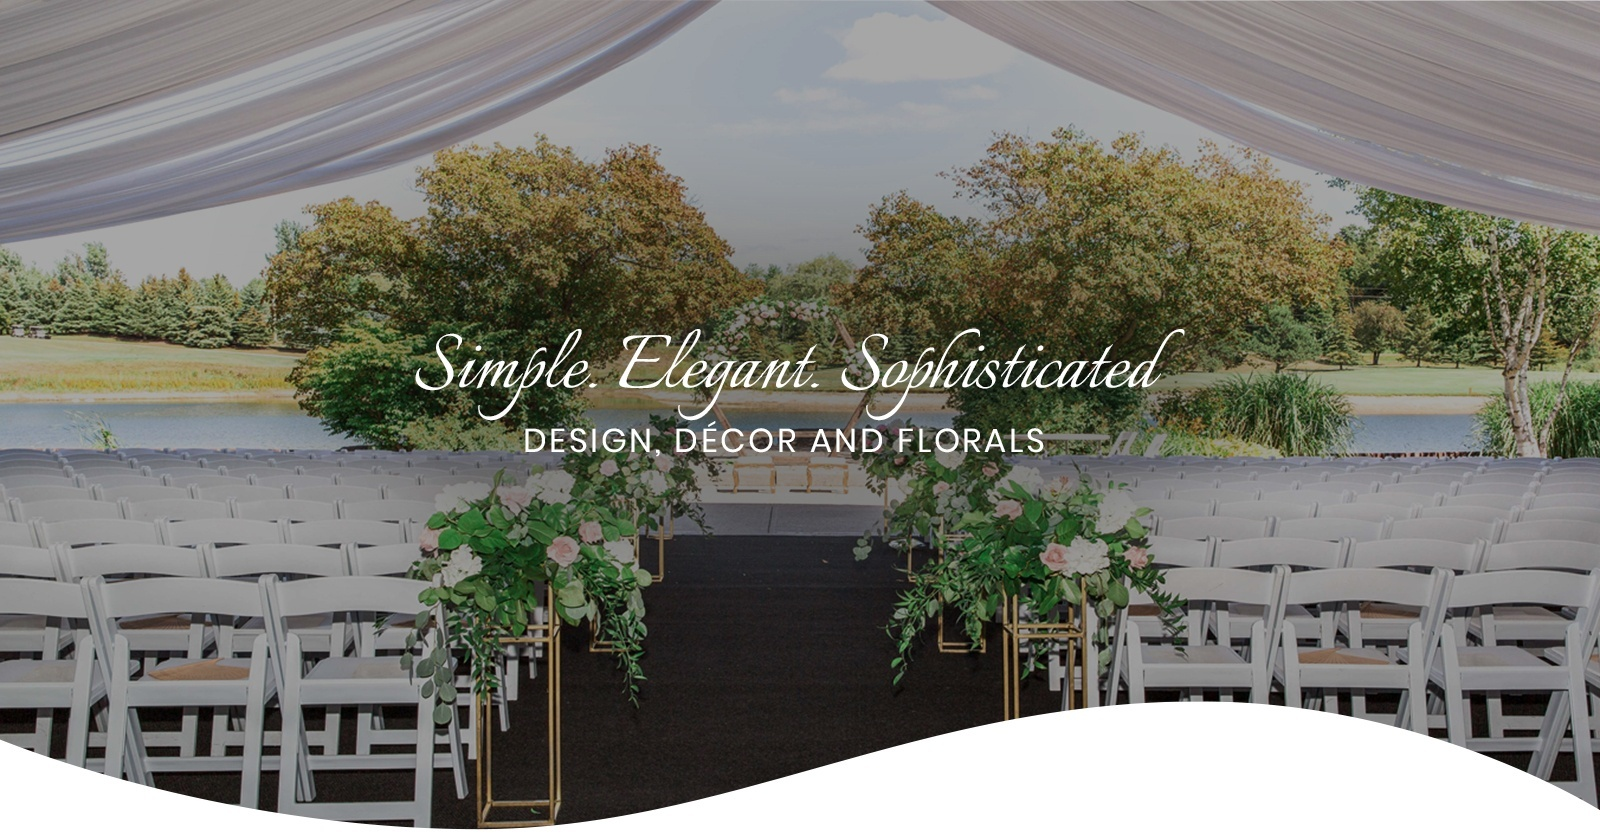 Wedding Decor Services Toronto by Design Mantraa - Decor and Florals